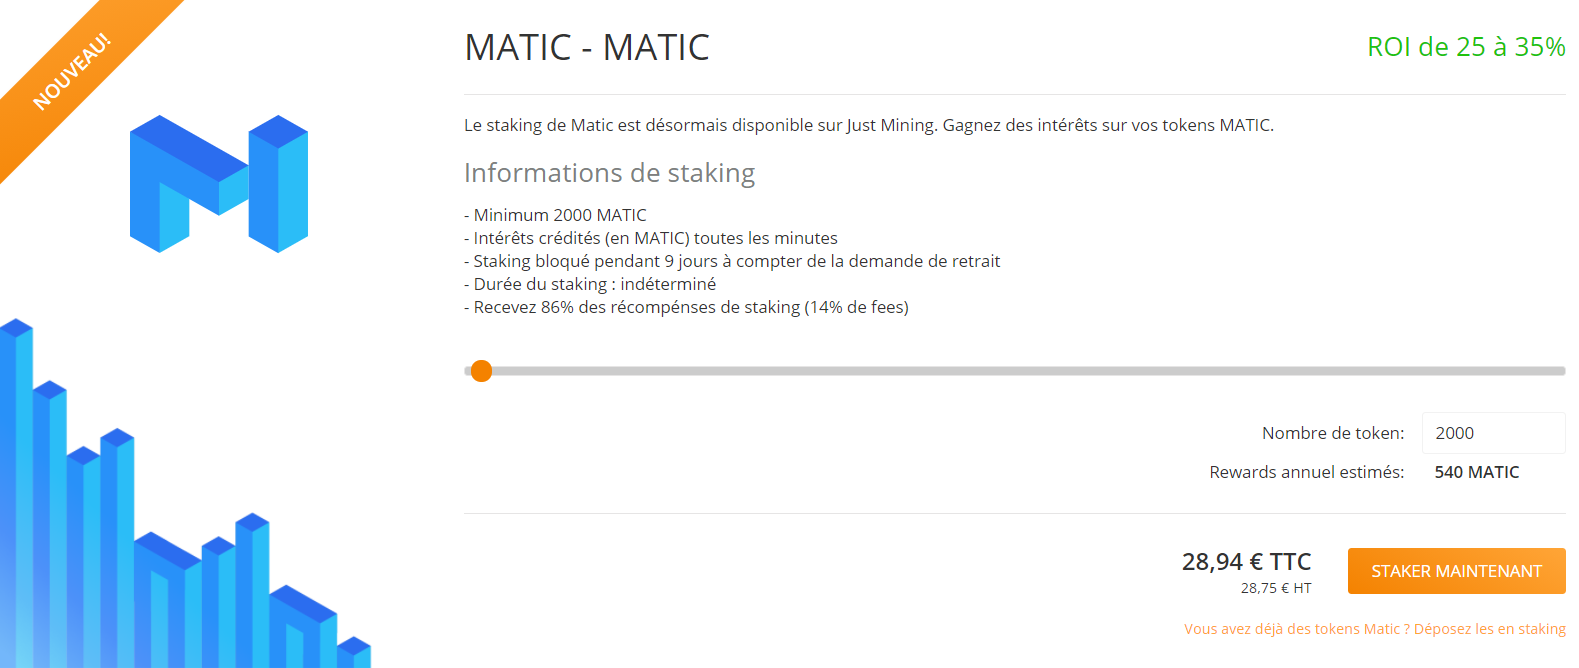 Matic Network Just Mining